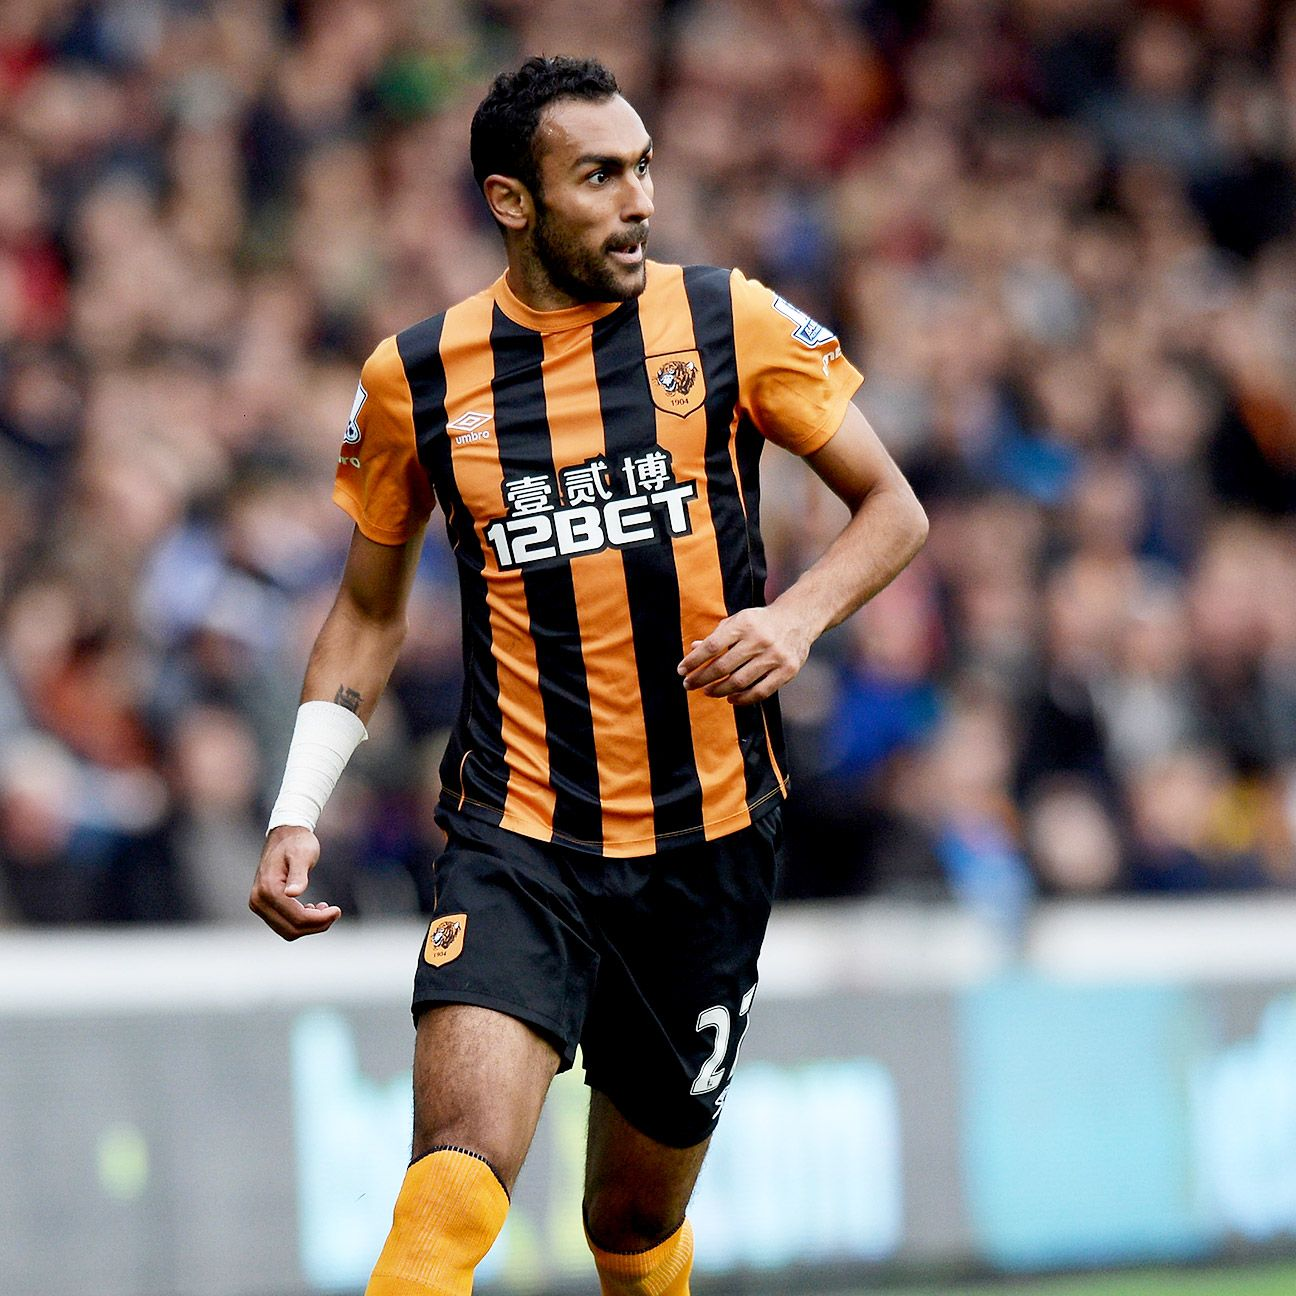 Hull City's Ahmed Elmohamady is not joining his Egypt teammates during the international break.